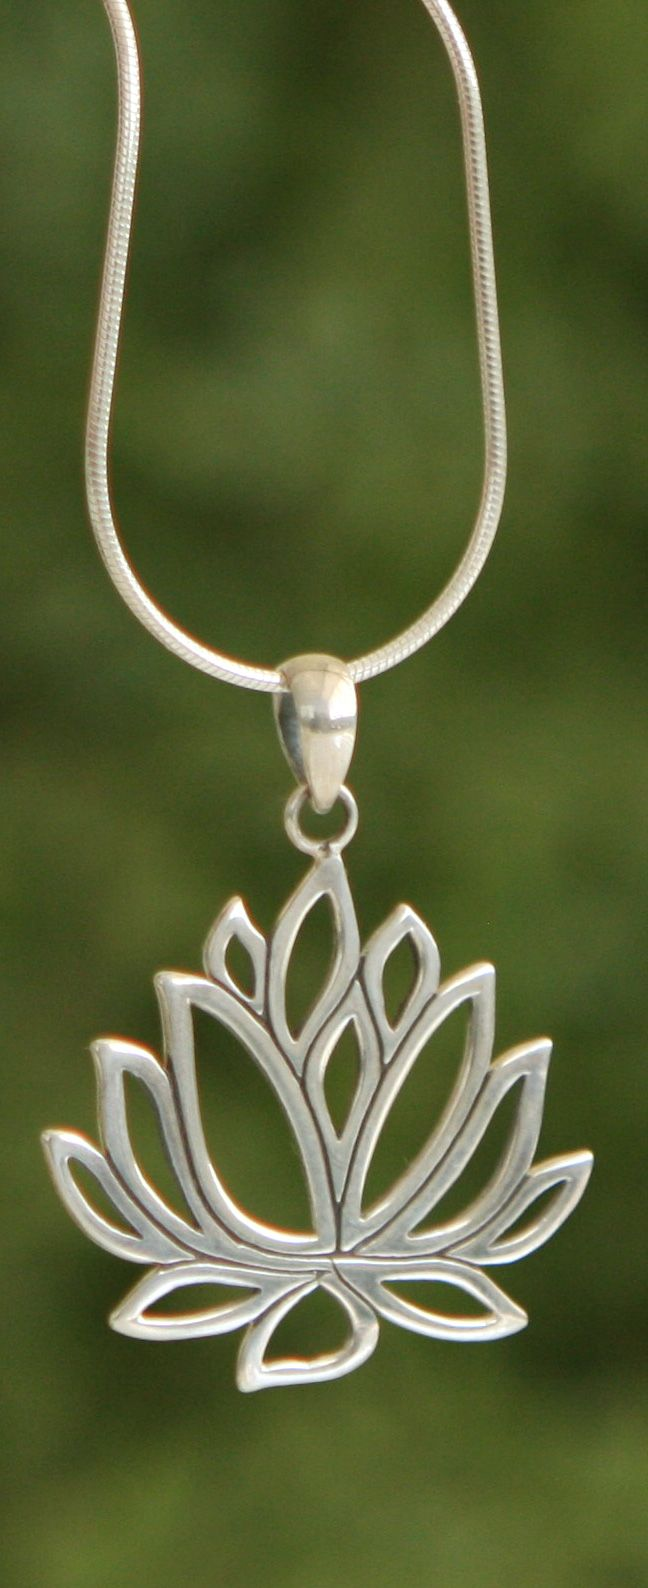 81 best lotus jewelry images on pinterest lotus jewelry drop sterling silver lotus pendant mozeypictures Choice Image